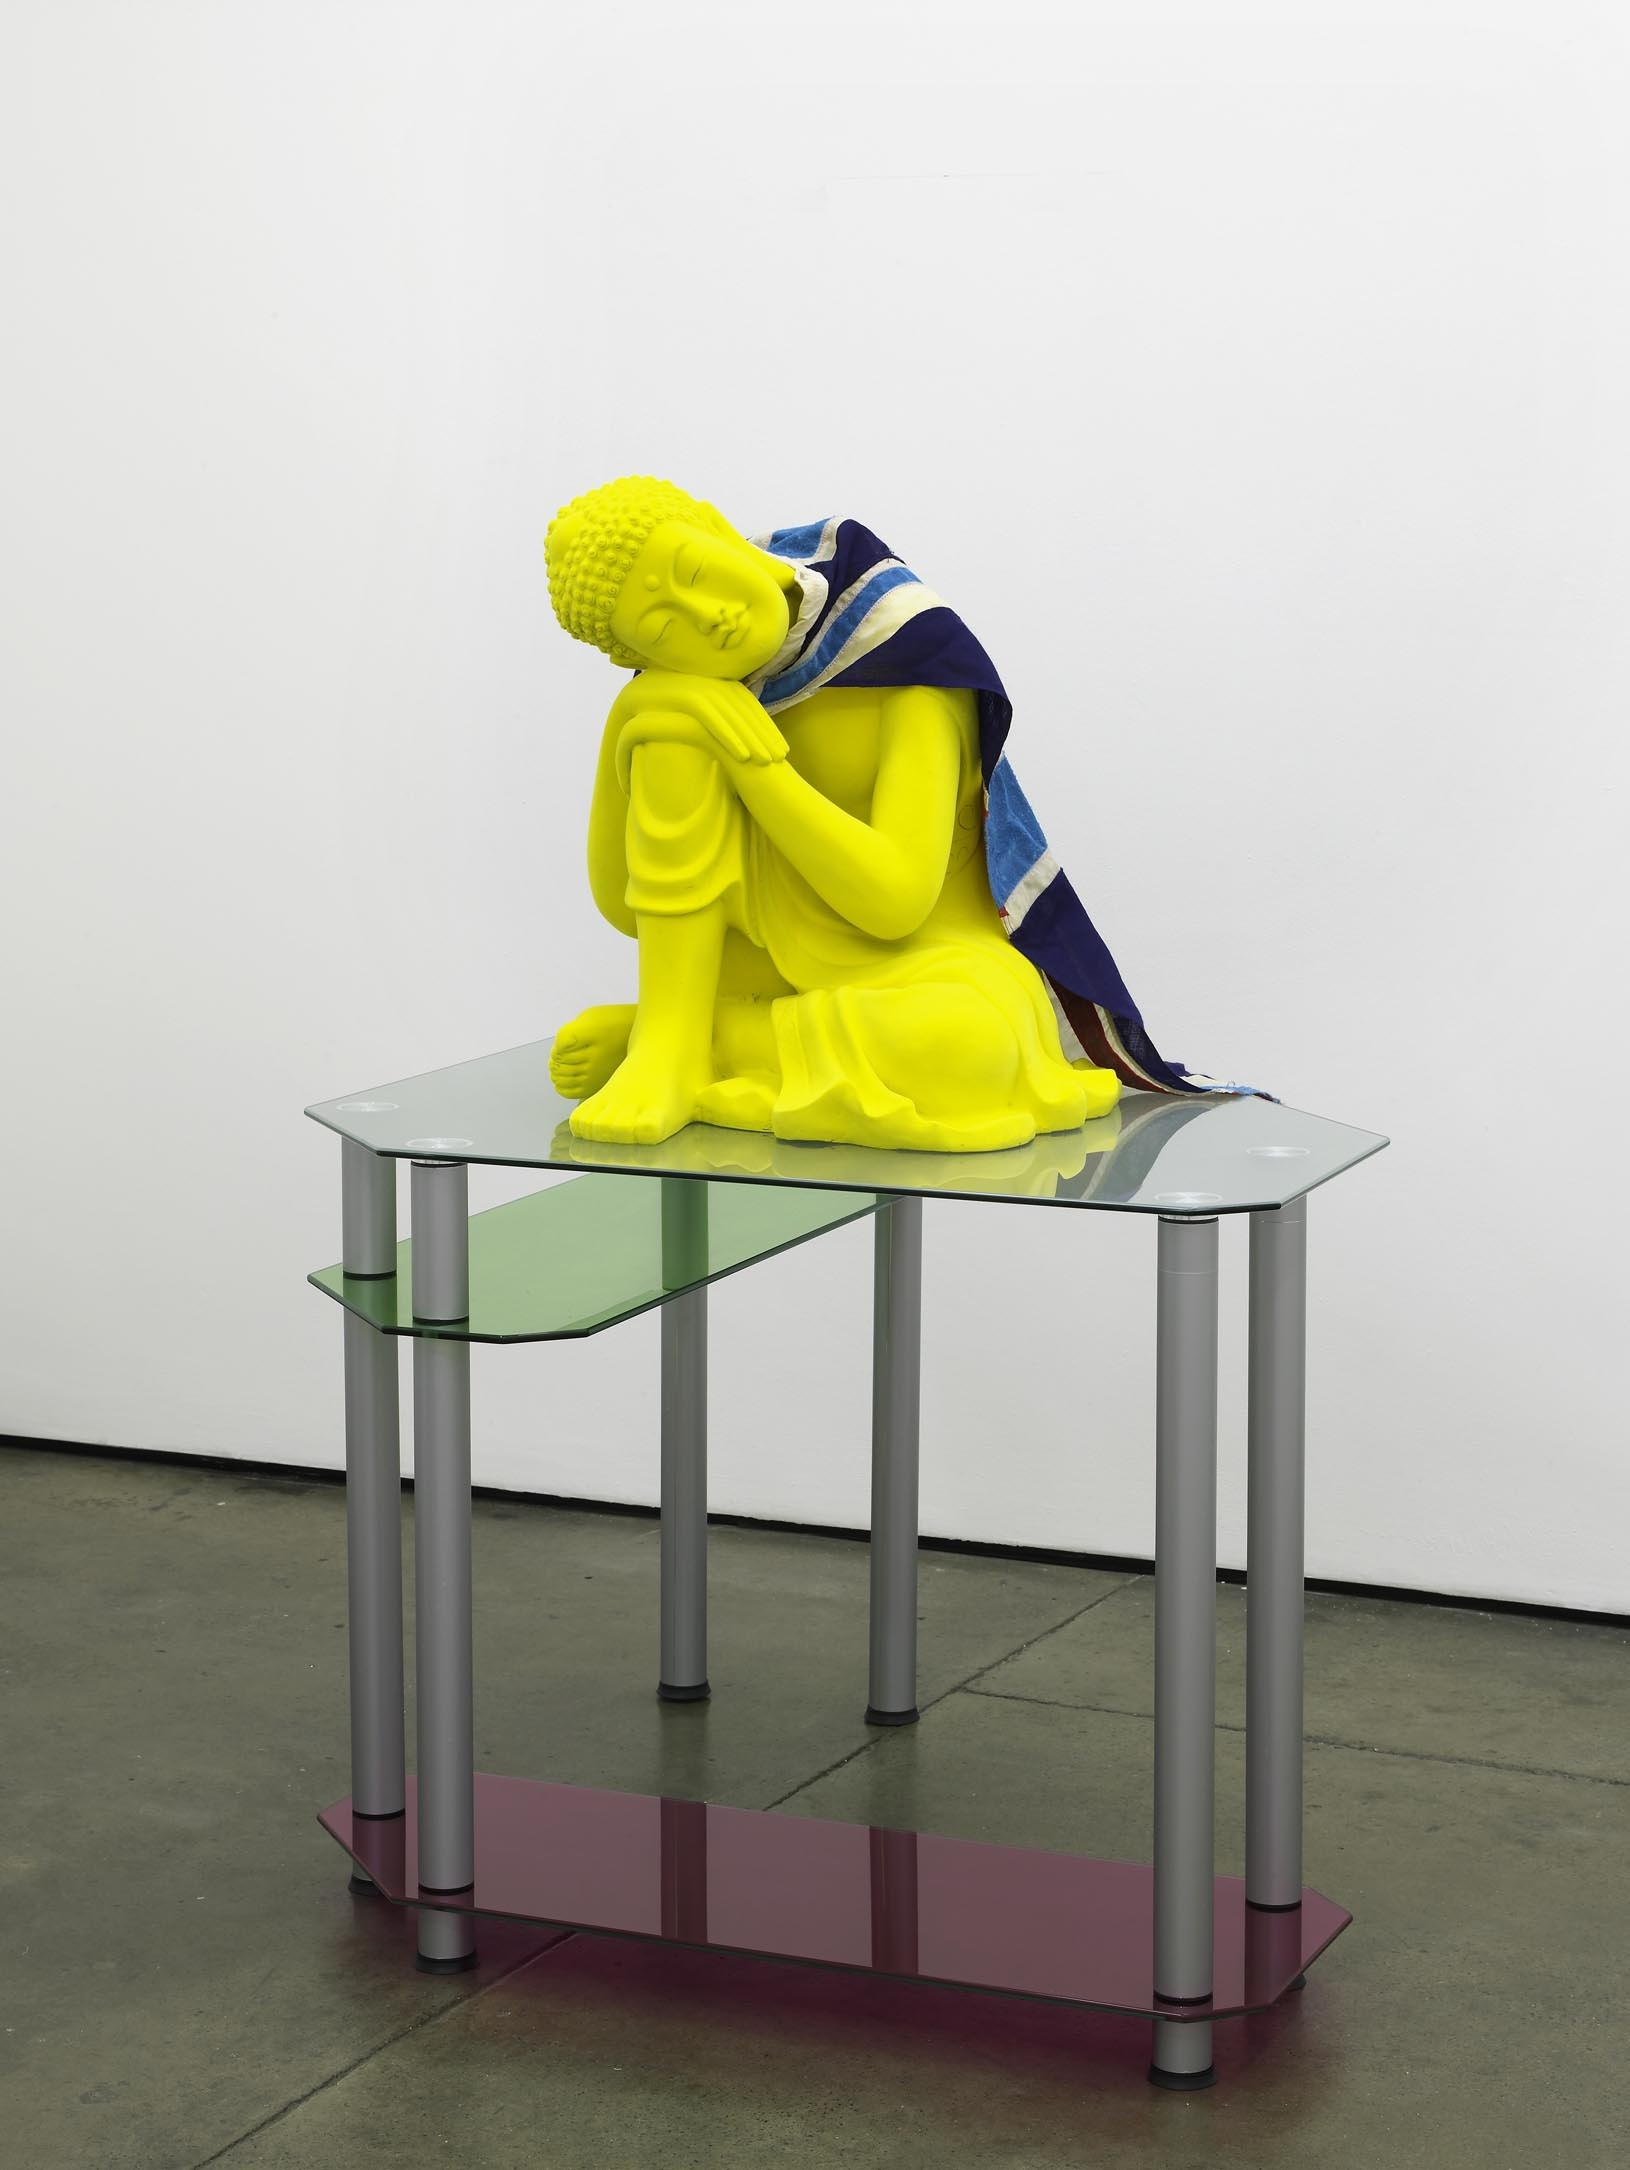 Matthew Darbyshire Untitled Homeware No. 13, 2011 yellow flocked buddha statue, turquoise flocked vintage union jack flag, coloured glass gels, glass and steel support 135 x 98 x 98 cm